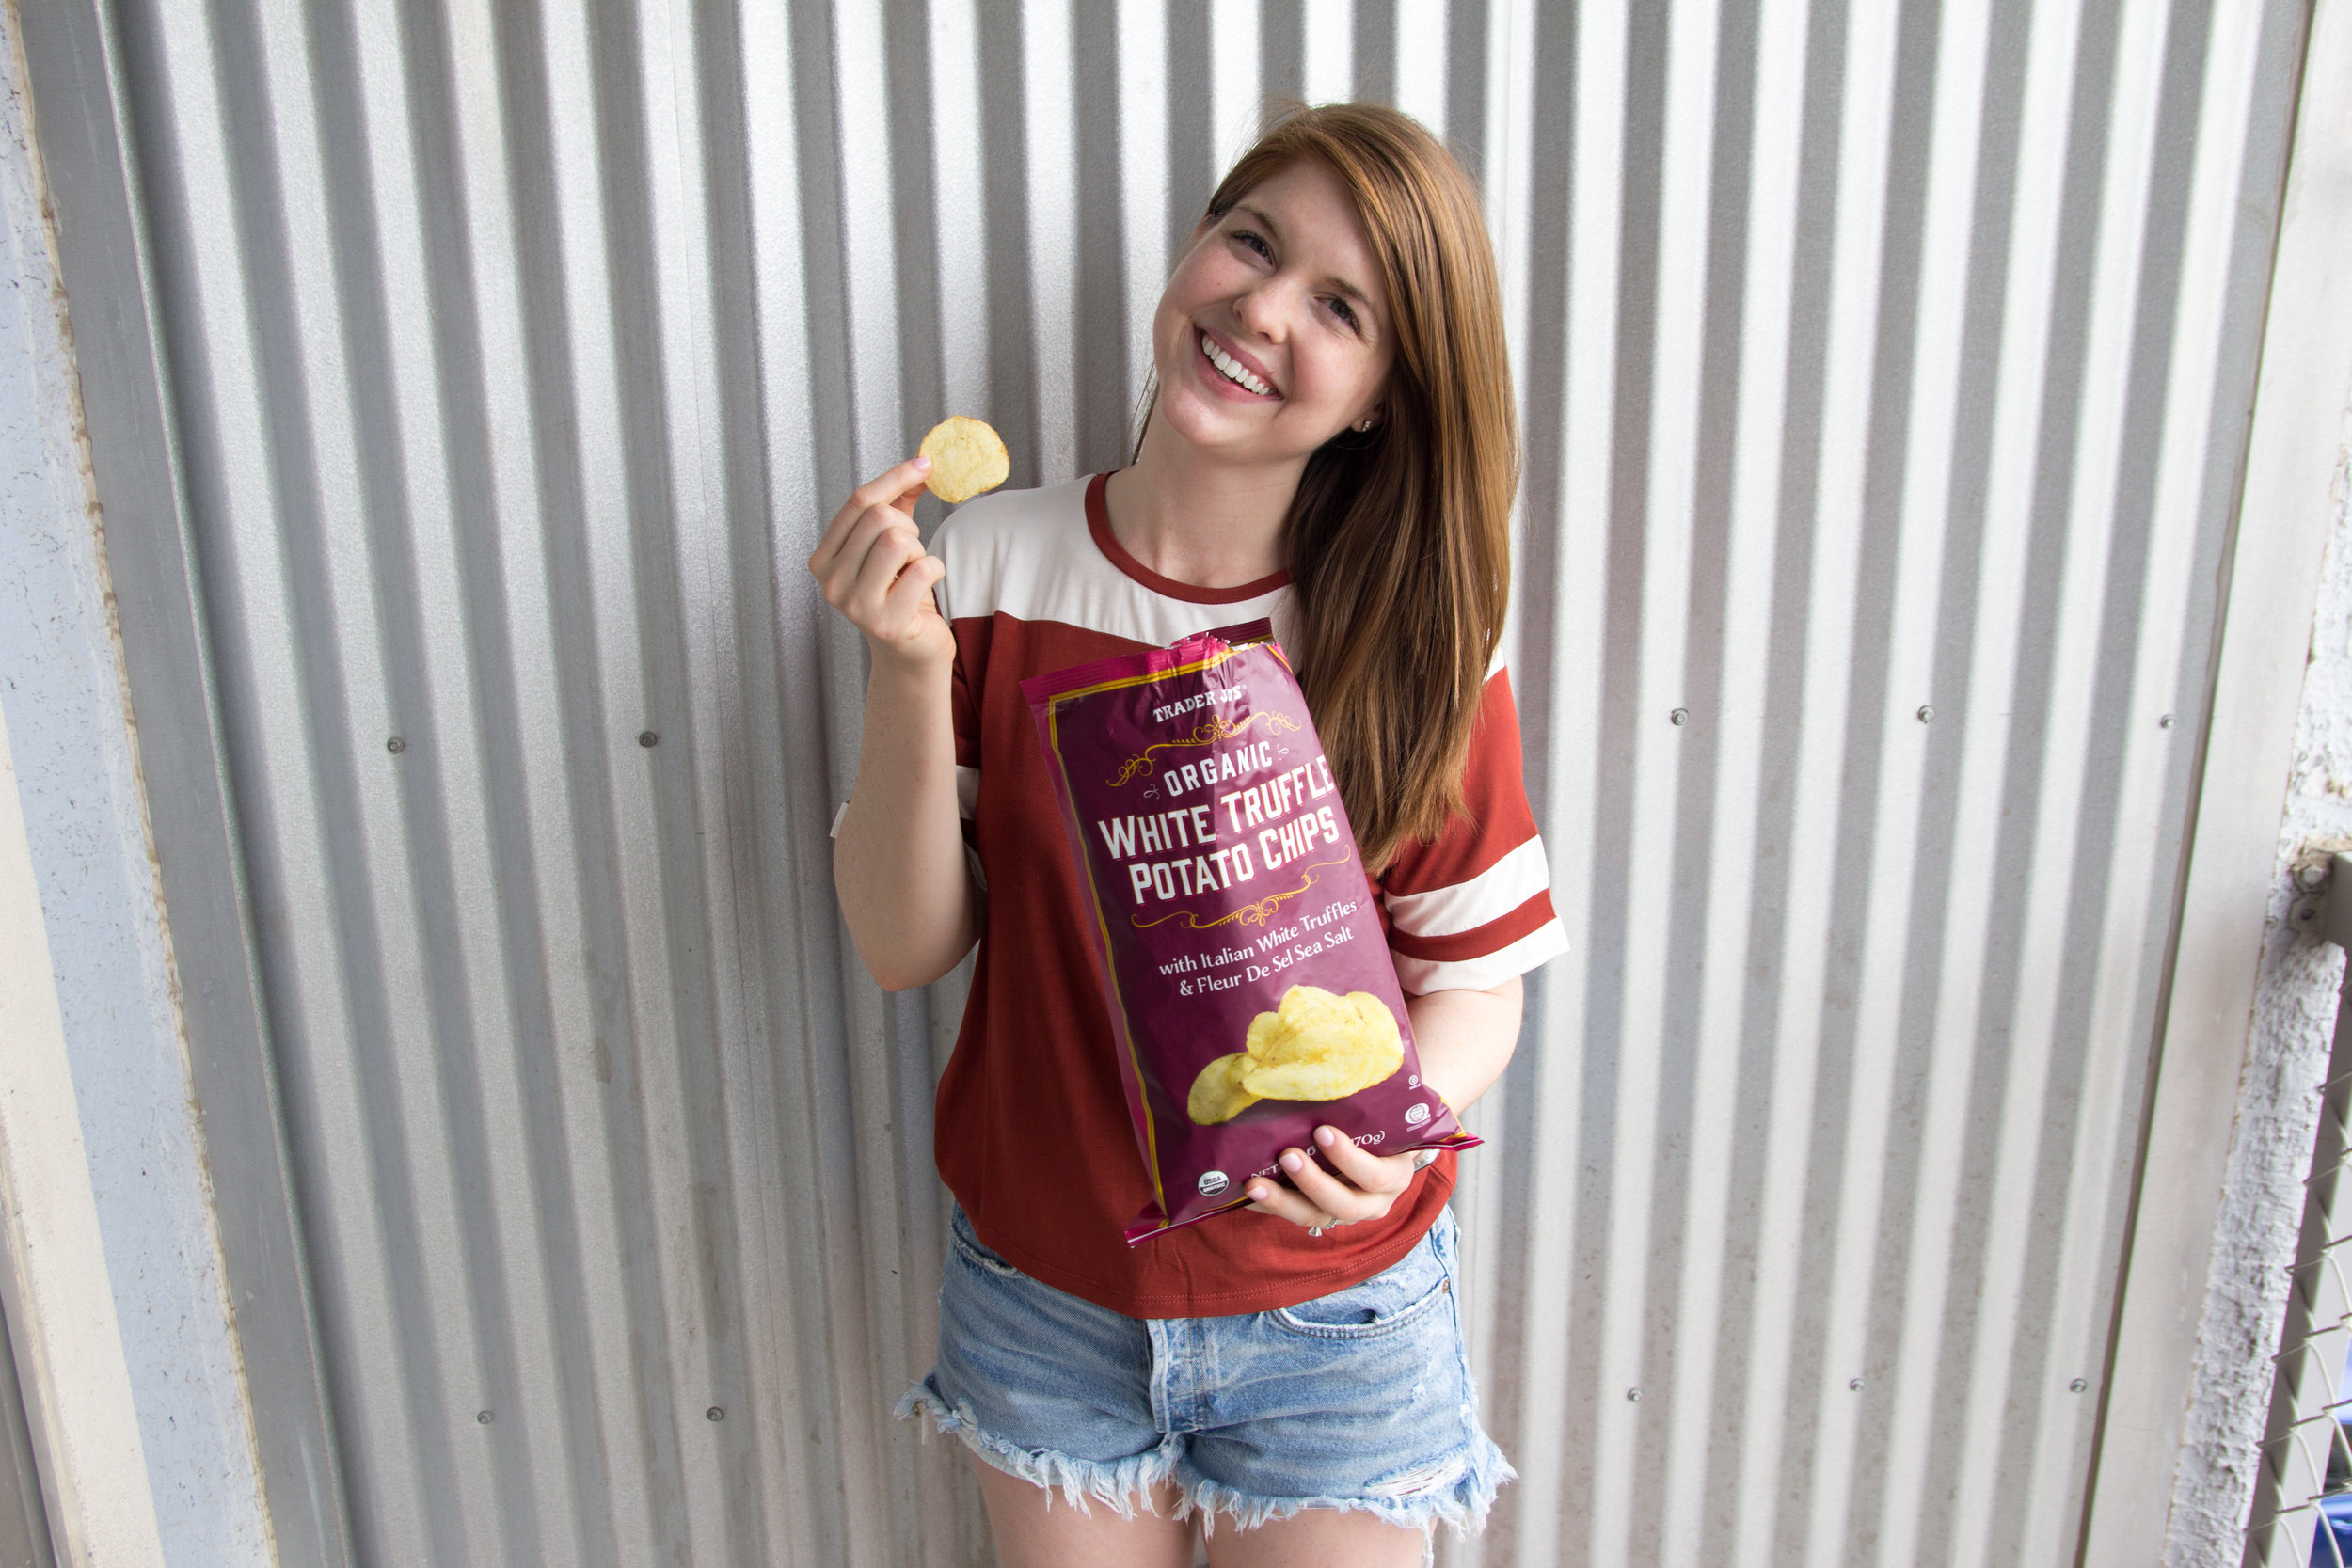 best things to buy from trader joe's, what to buy from trader joe's, favorite 13 items from Trader Joe's,  don't ask why knit t-shirt, agolde parker vintage shorts, white truffle potato chips